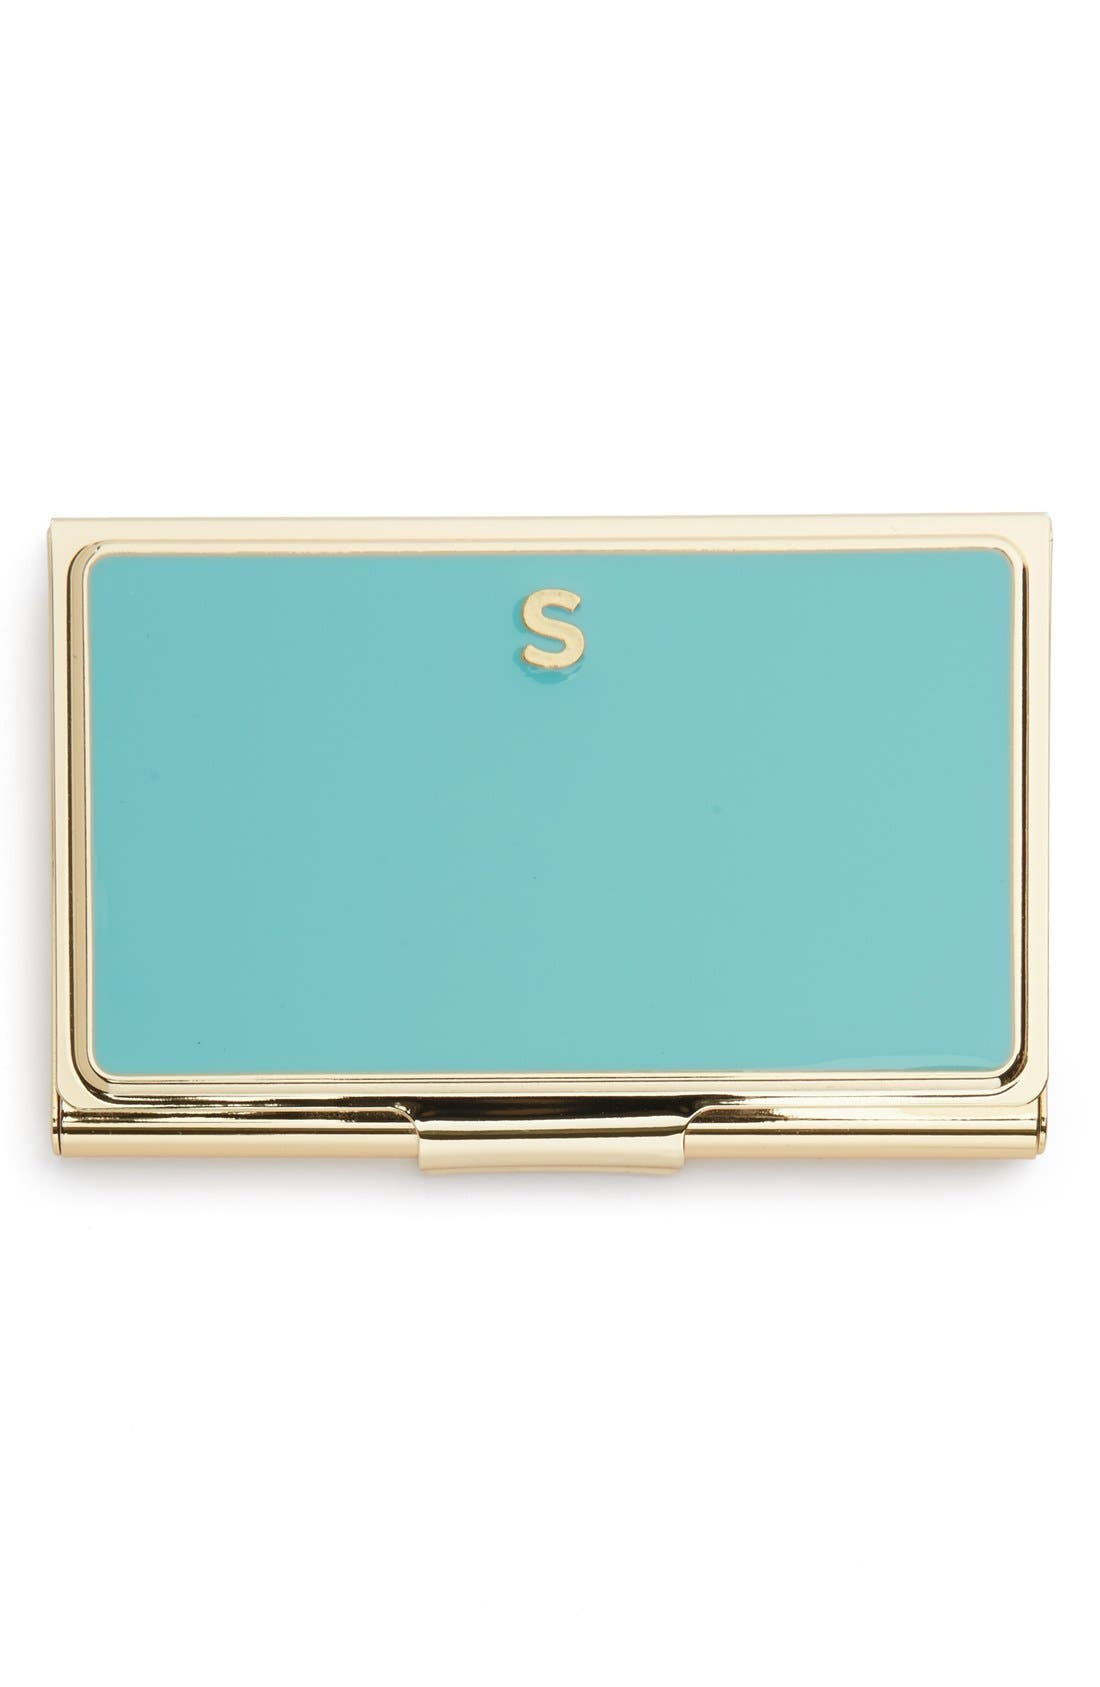 Alternate Image 1 Selected - kate spade new york 'one in a million' business card holder